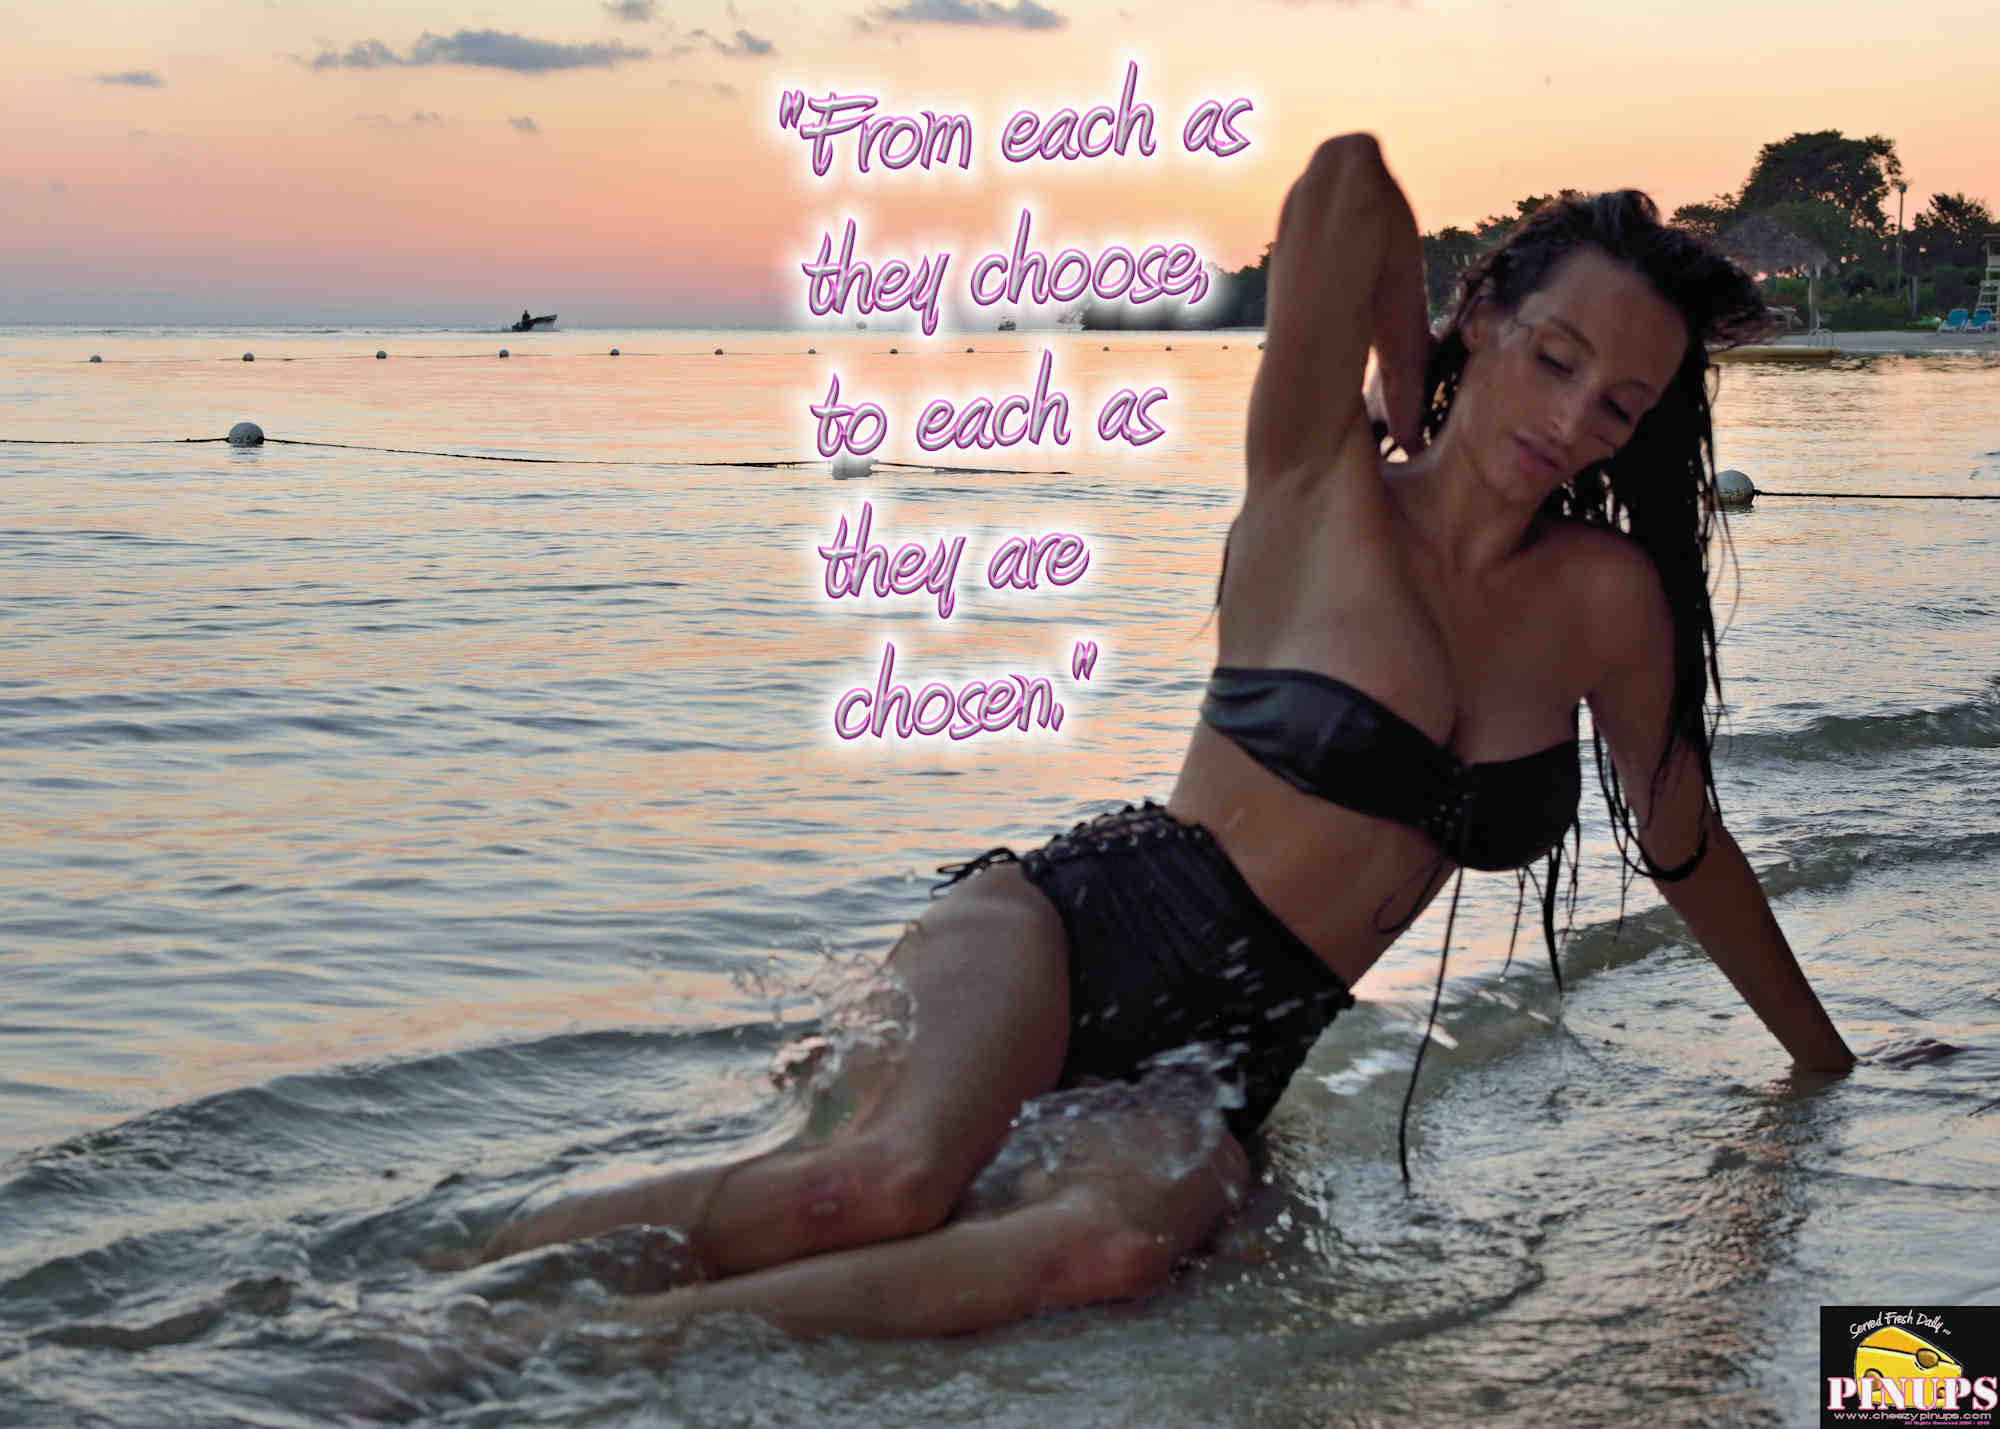 """Cheezy Pinup - November 16, 2018   """"From each as they choose, to each as they are chosen."""" - Robert Nozick Model: @hemigirl"""